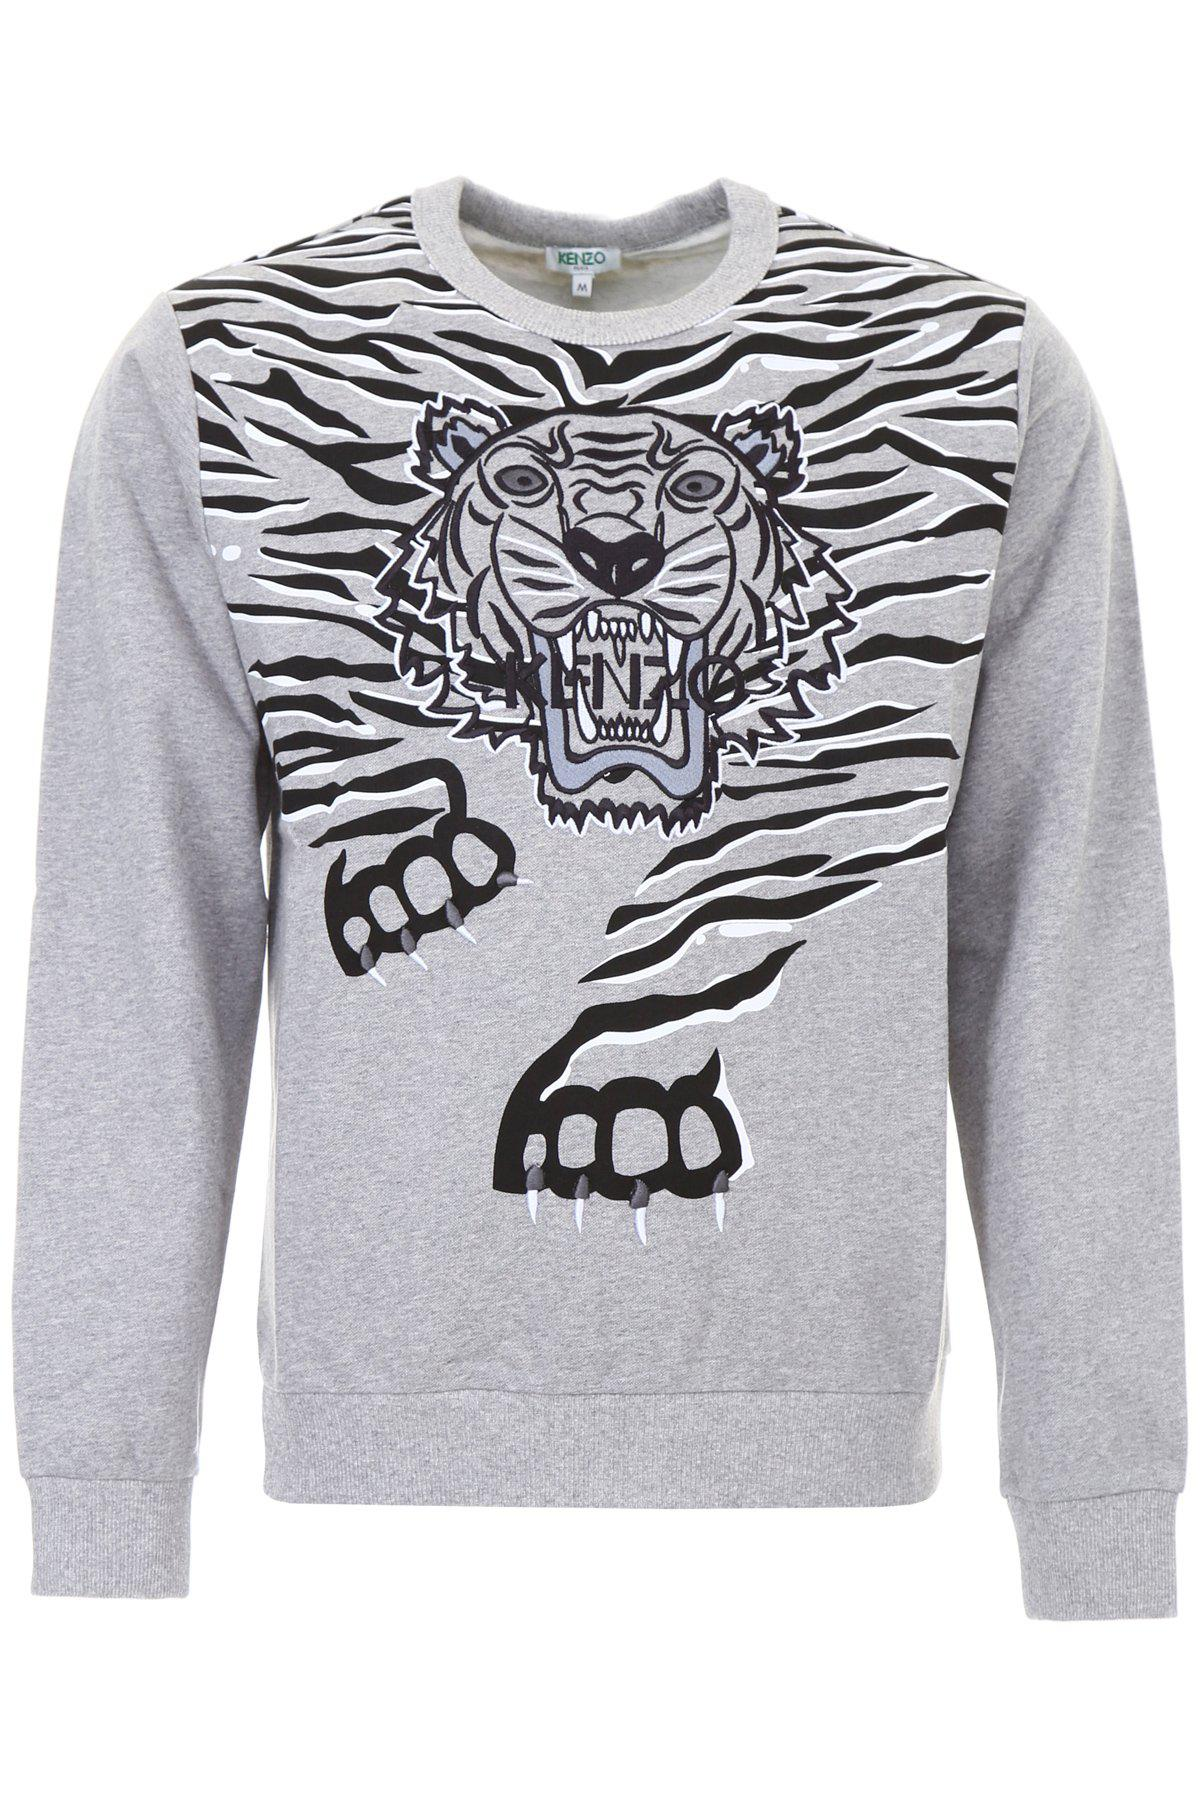 5fd940dce2 Lyst - Kenzo Tiger Print Sweater in Gray for Men